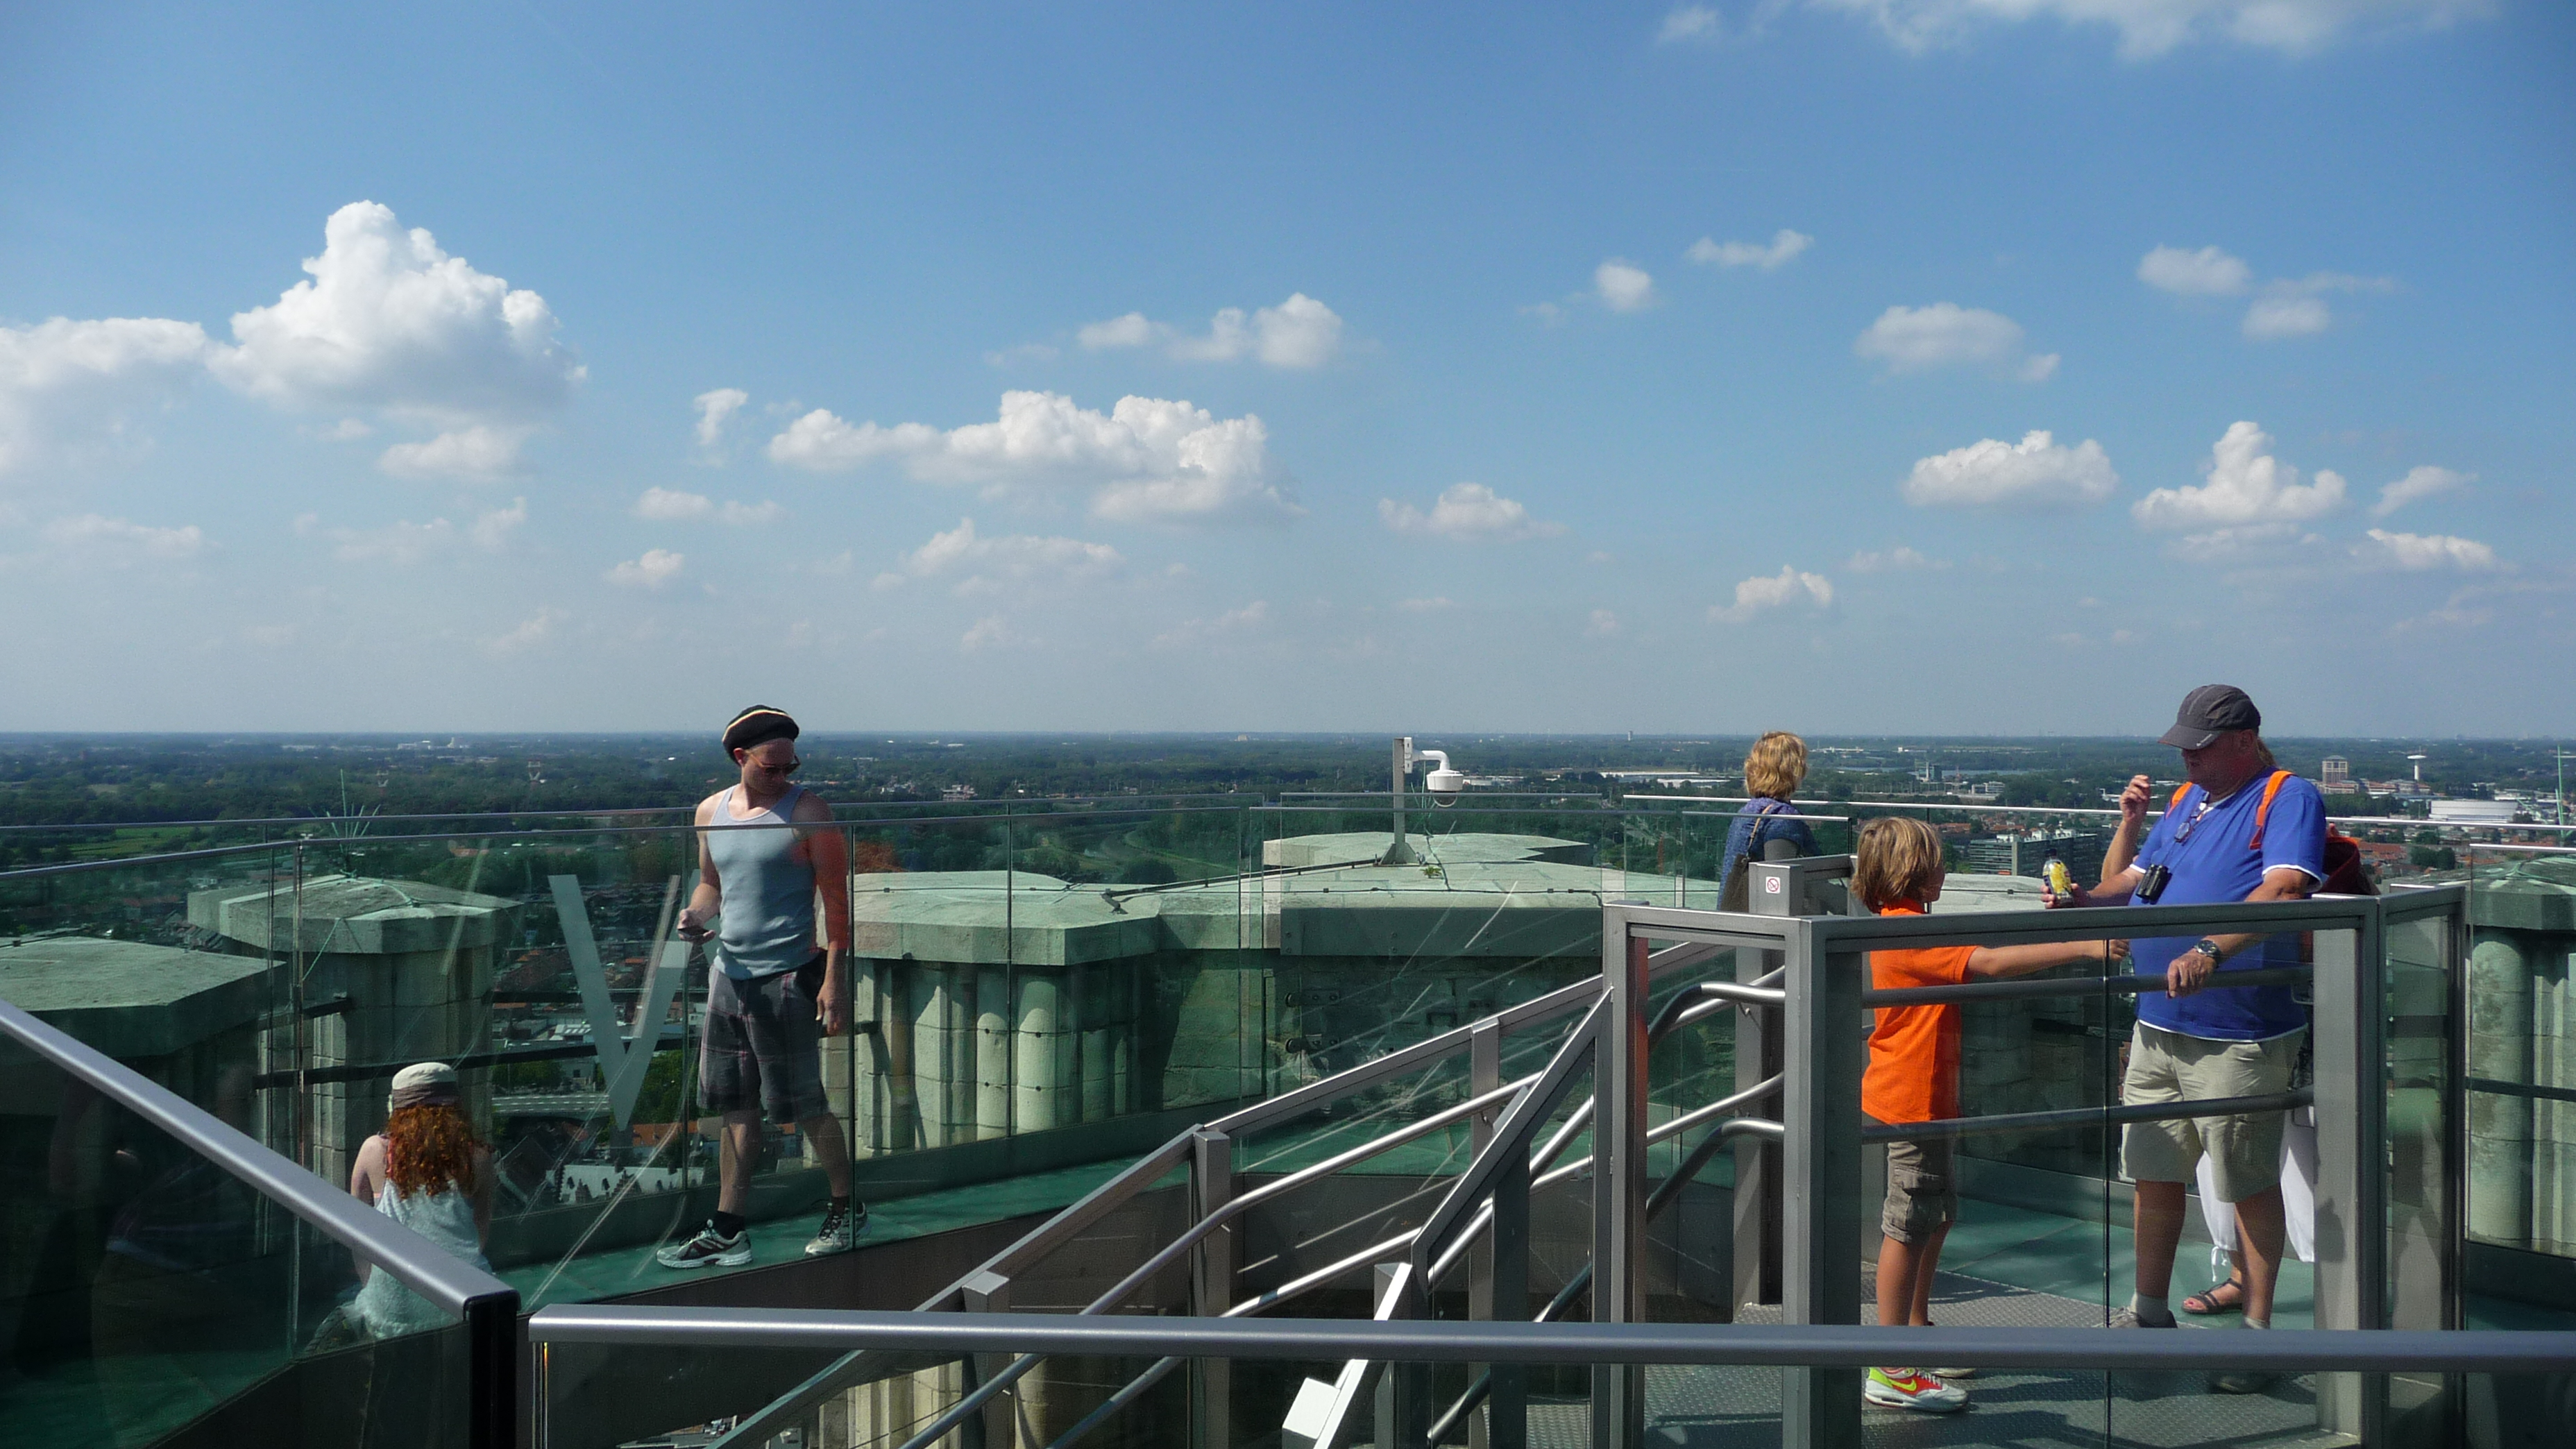 The Skywalk gives you breathtaking views